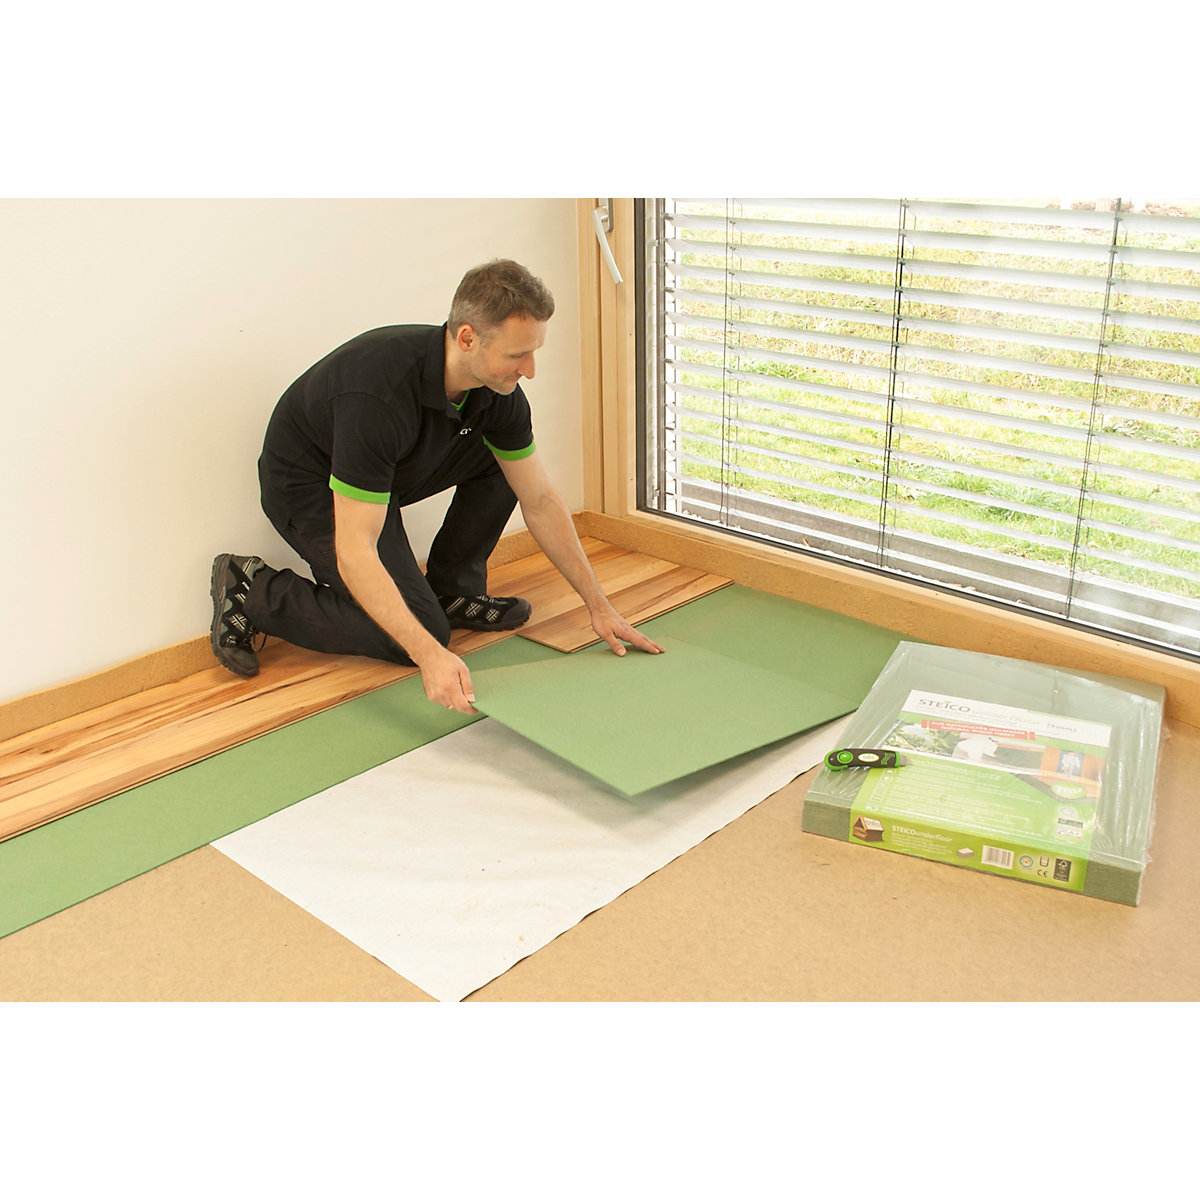 4trade Green Fibreboard Flooring Underlay Size 850mm X 590mm 5mm